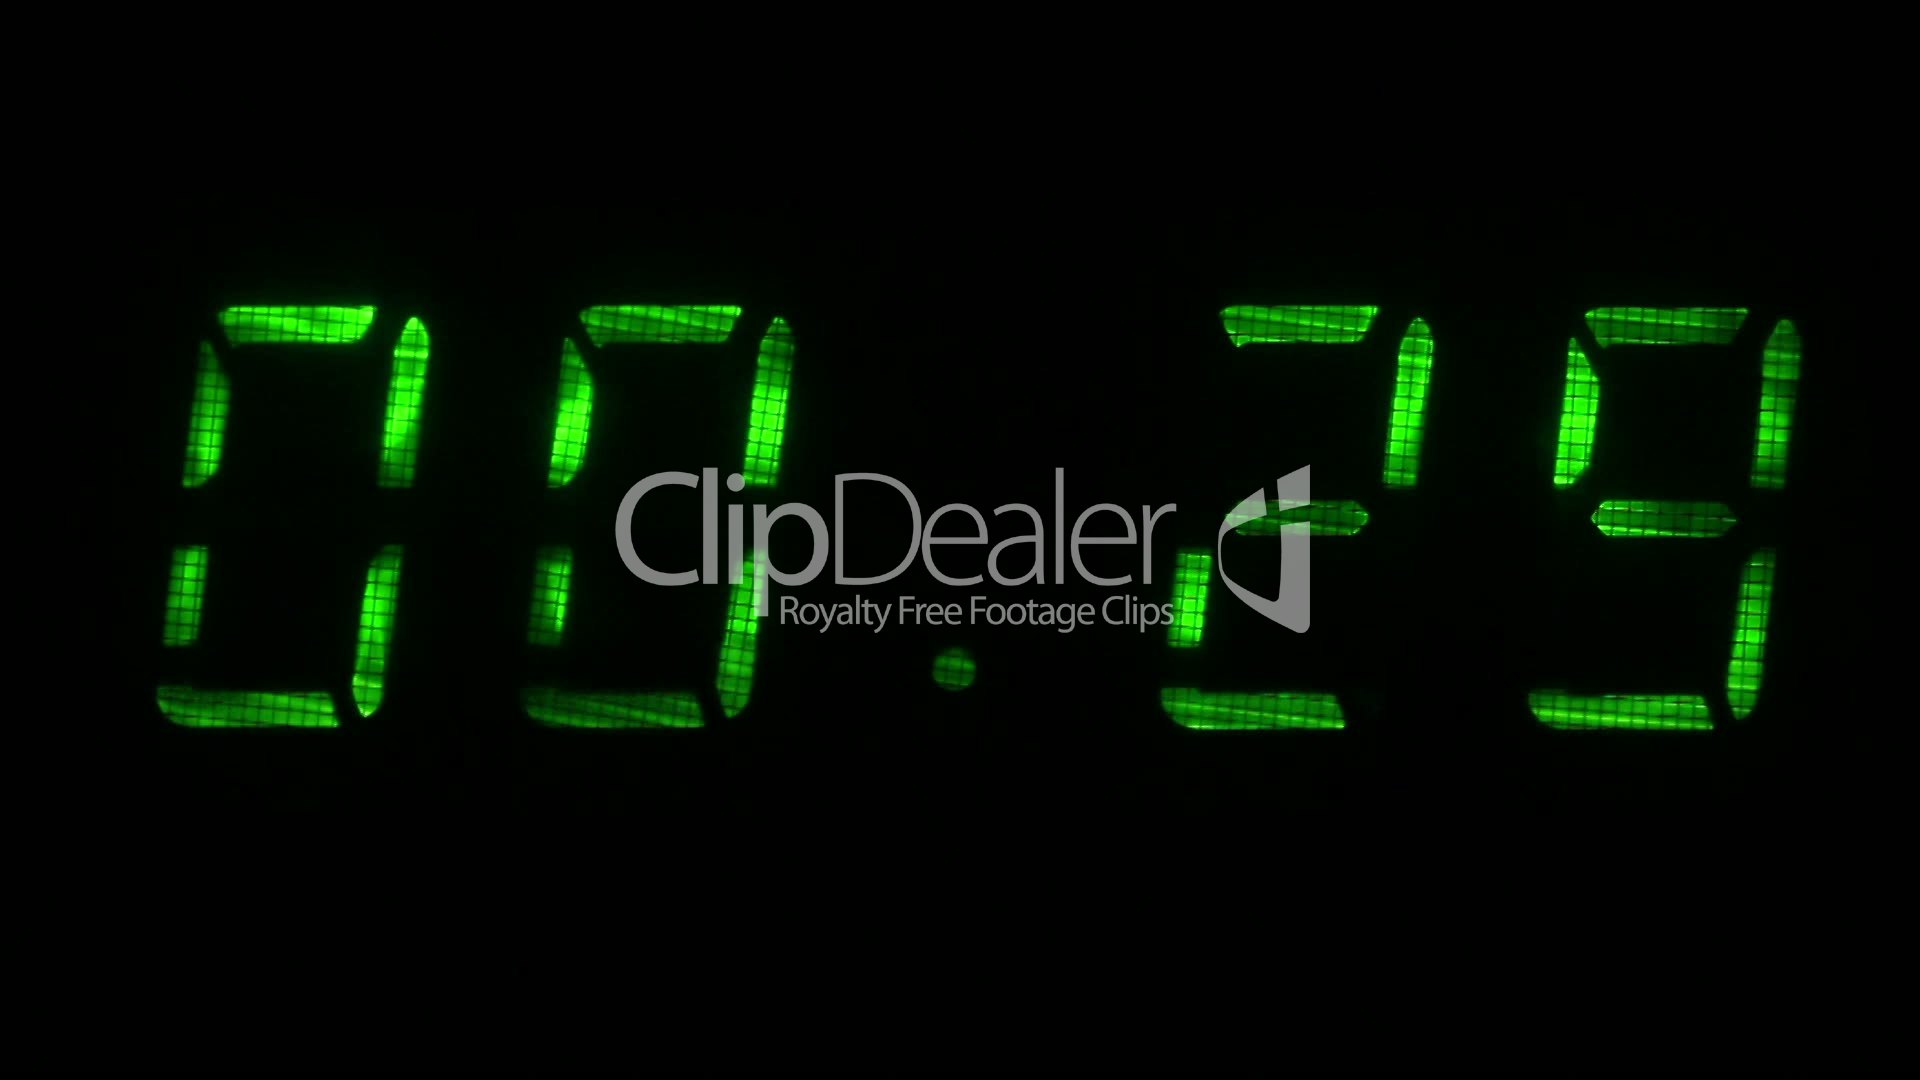 digital countdown timer with an interval 30 seconds 00 30 00 00